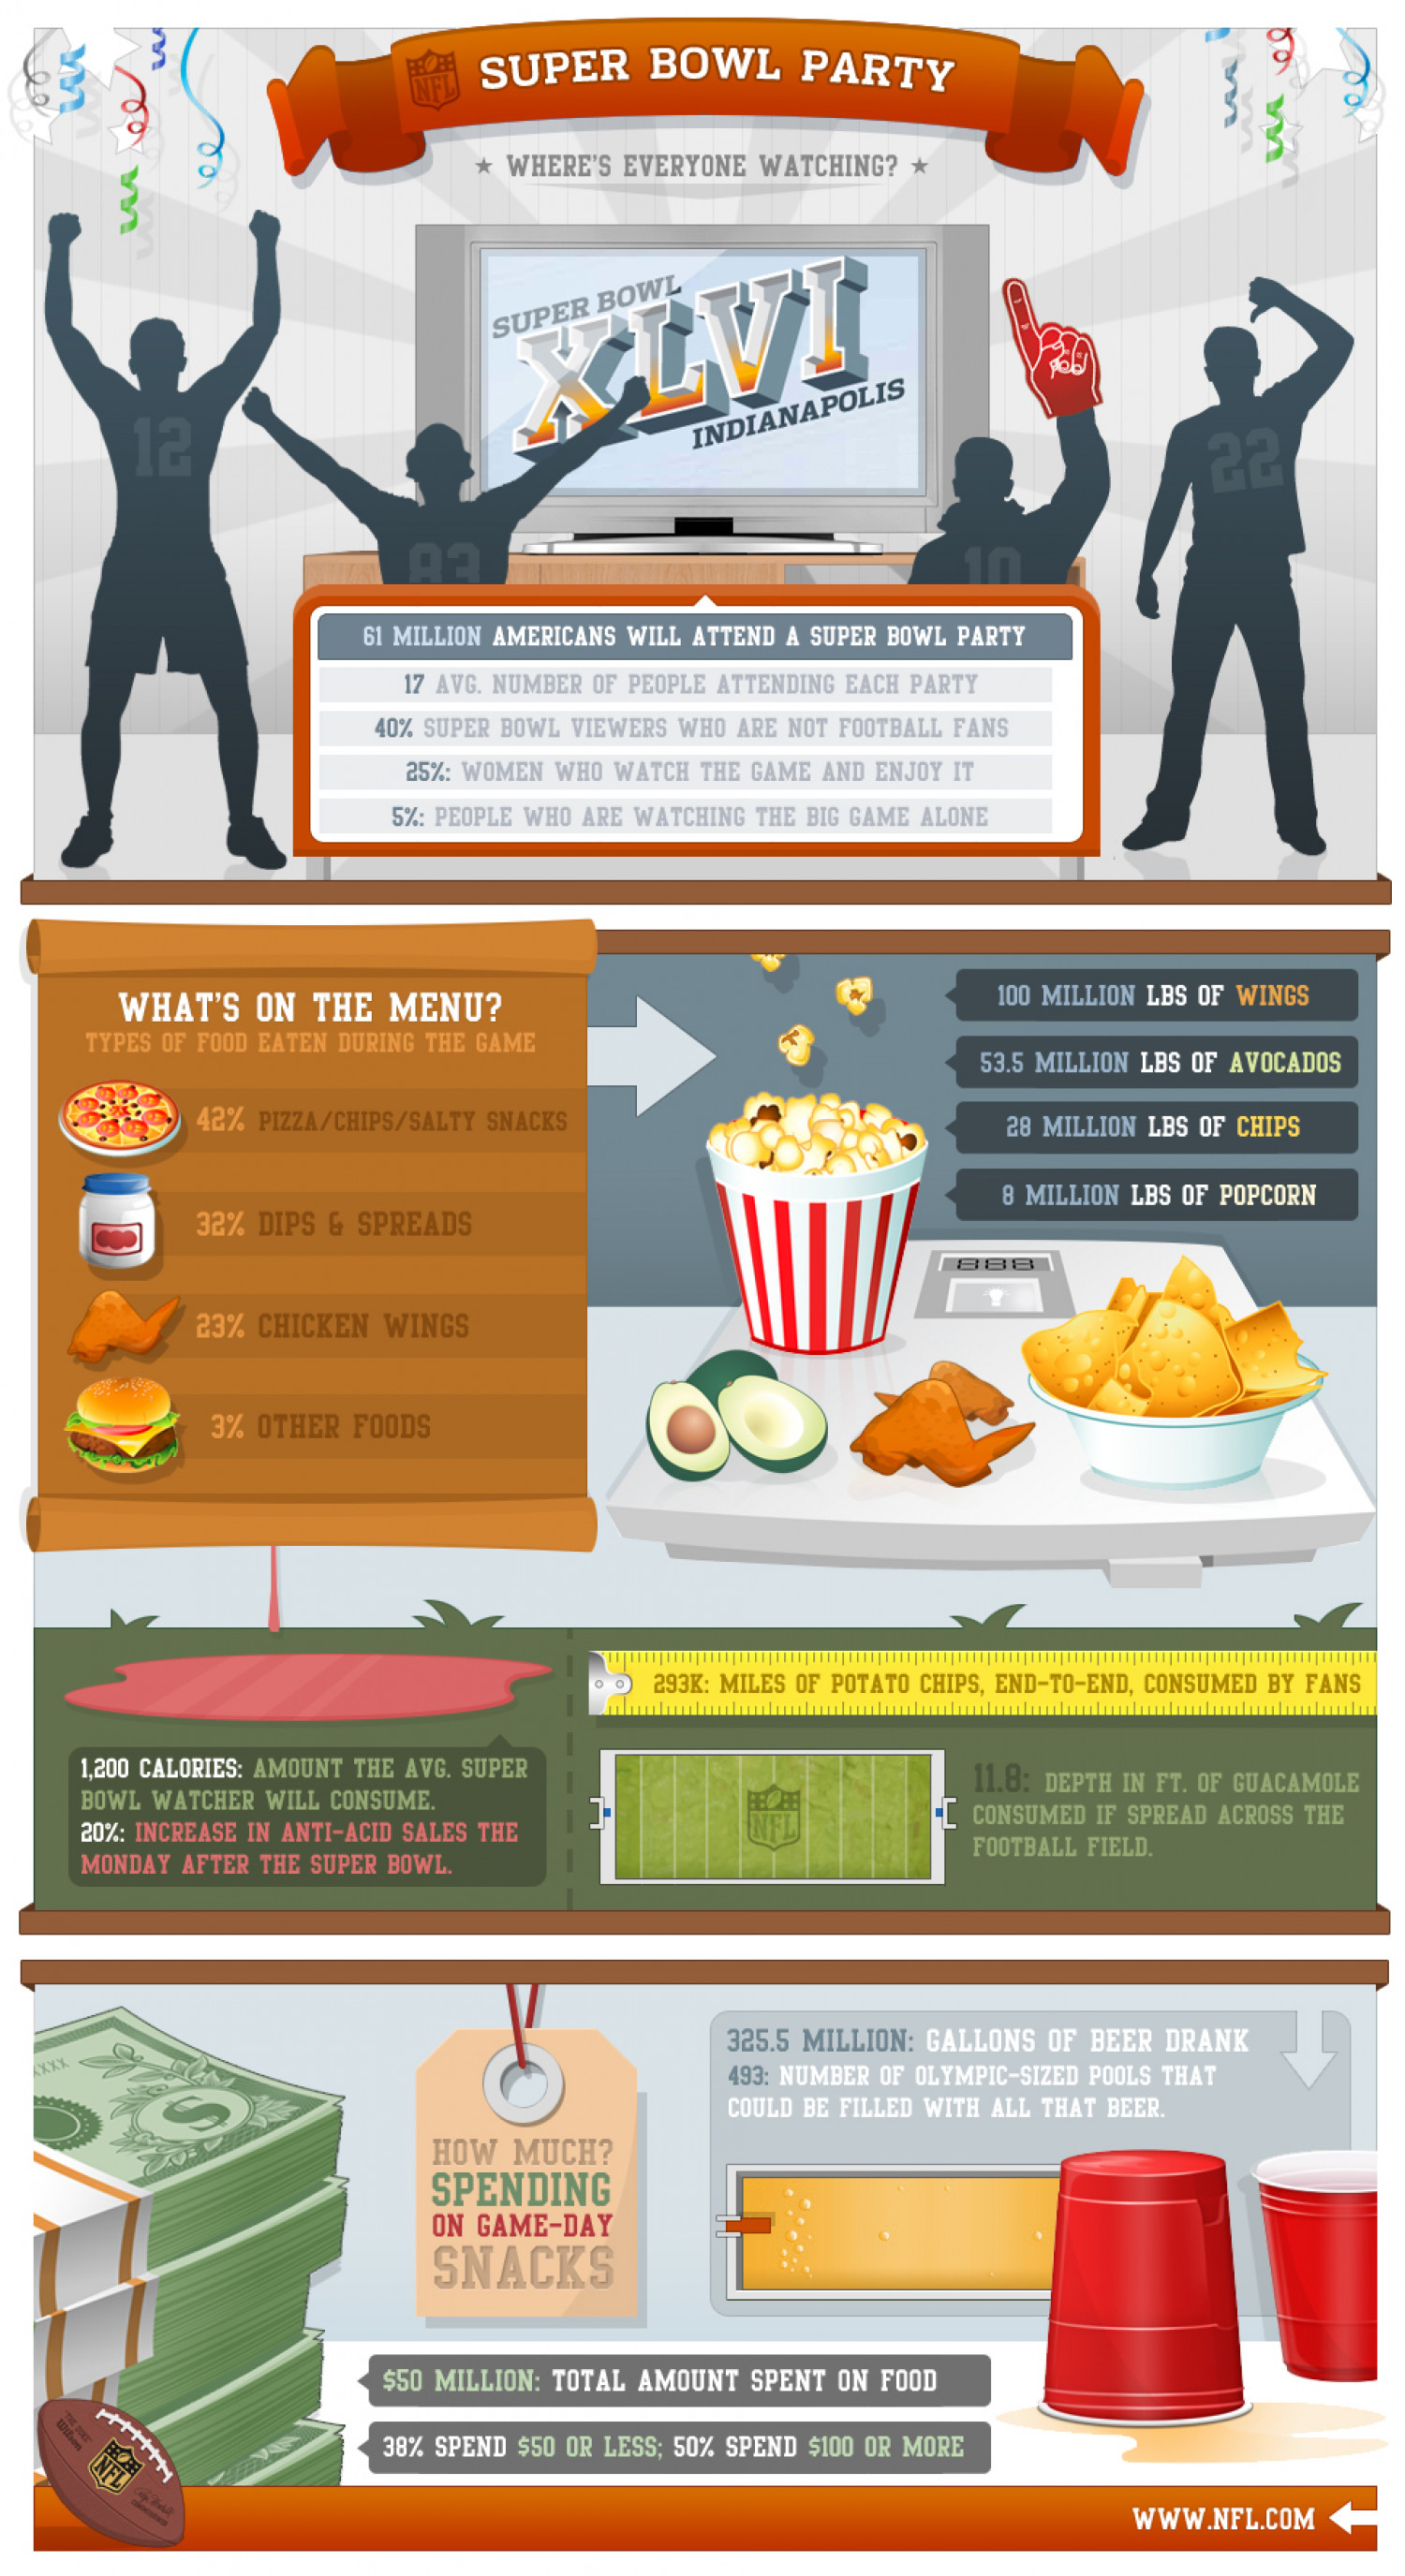 NFL - Super Bowl Party Infographic